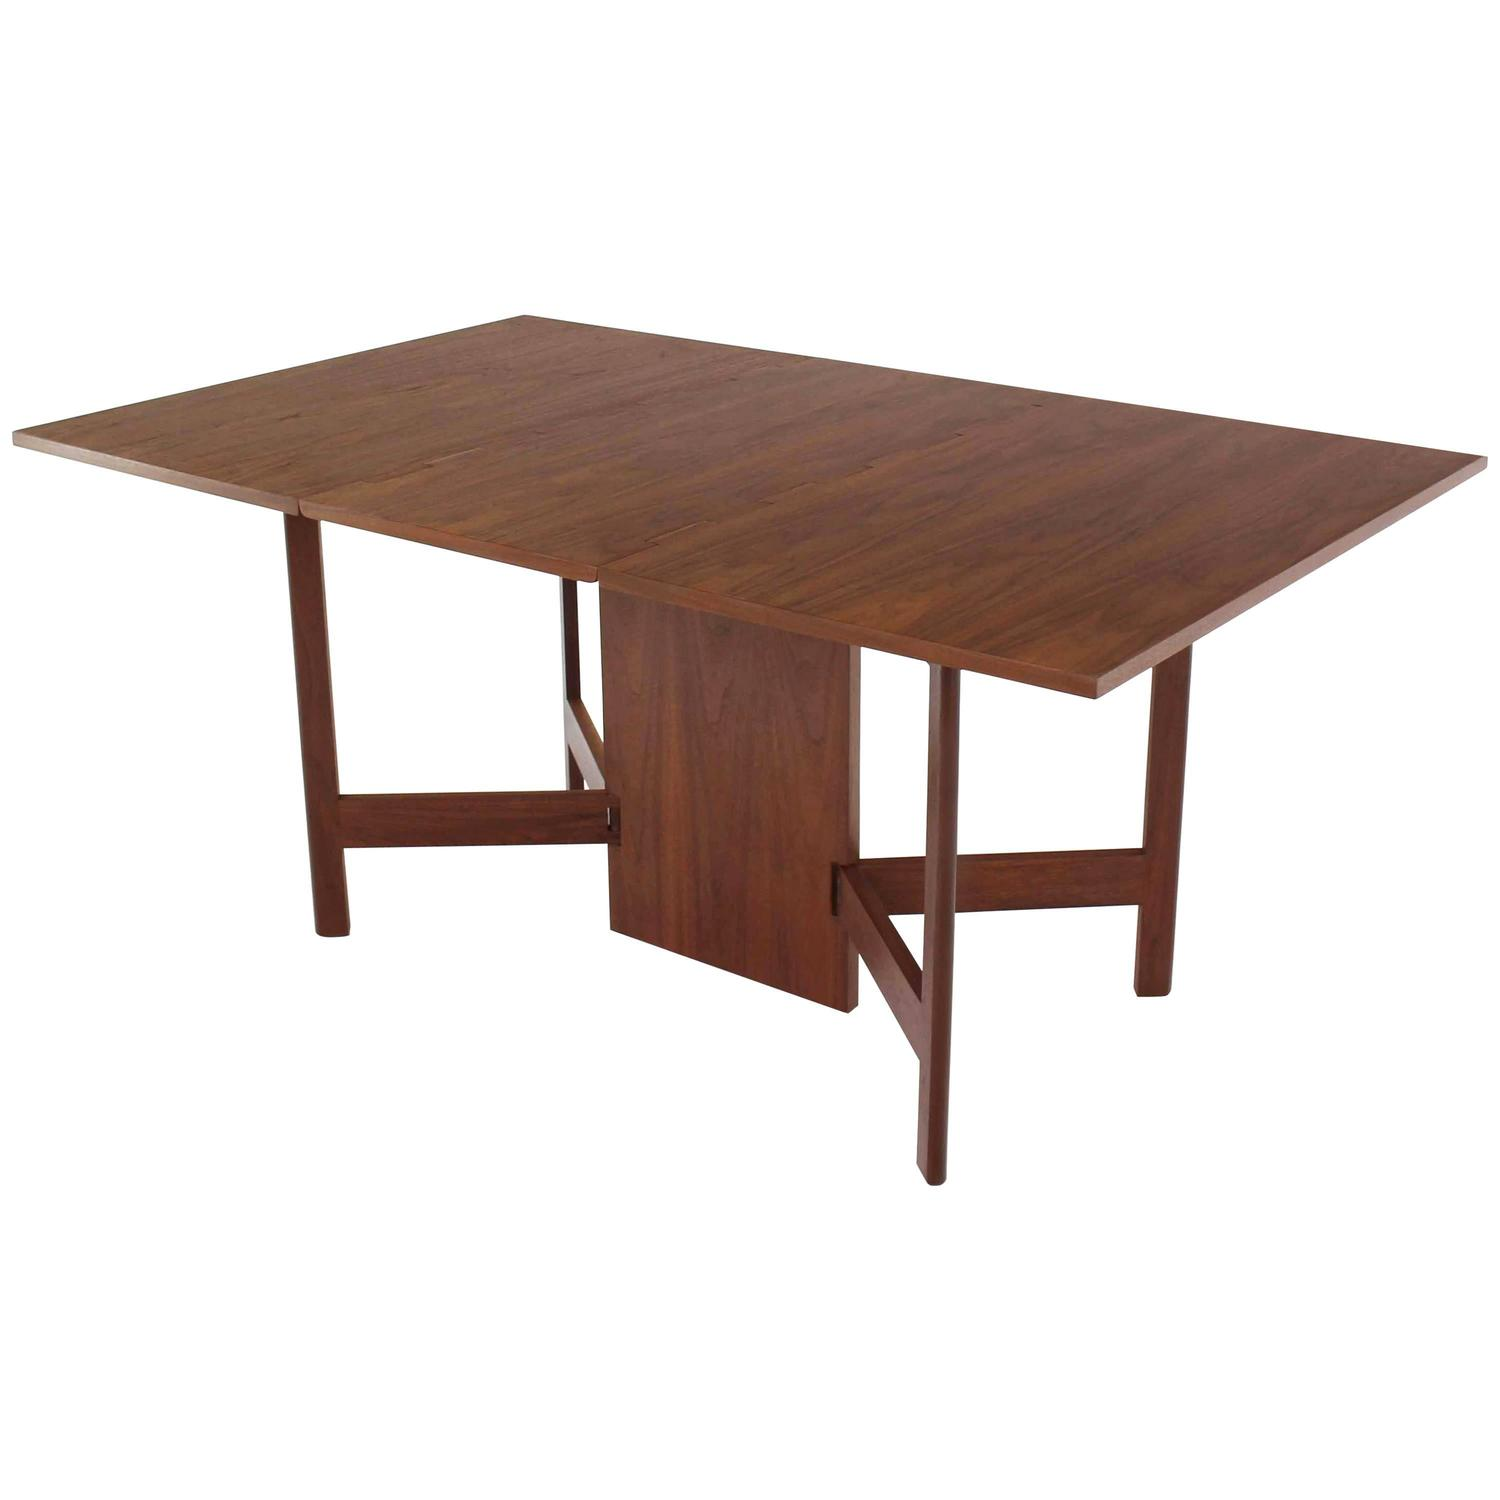 Drop Leaf Dining Tables For Sale Hepplewhite Drop Leaf  : 4659103z from sherlockdesigner.com size 1500 x 1500 jpeg 52kB